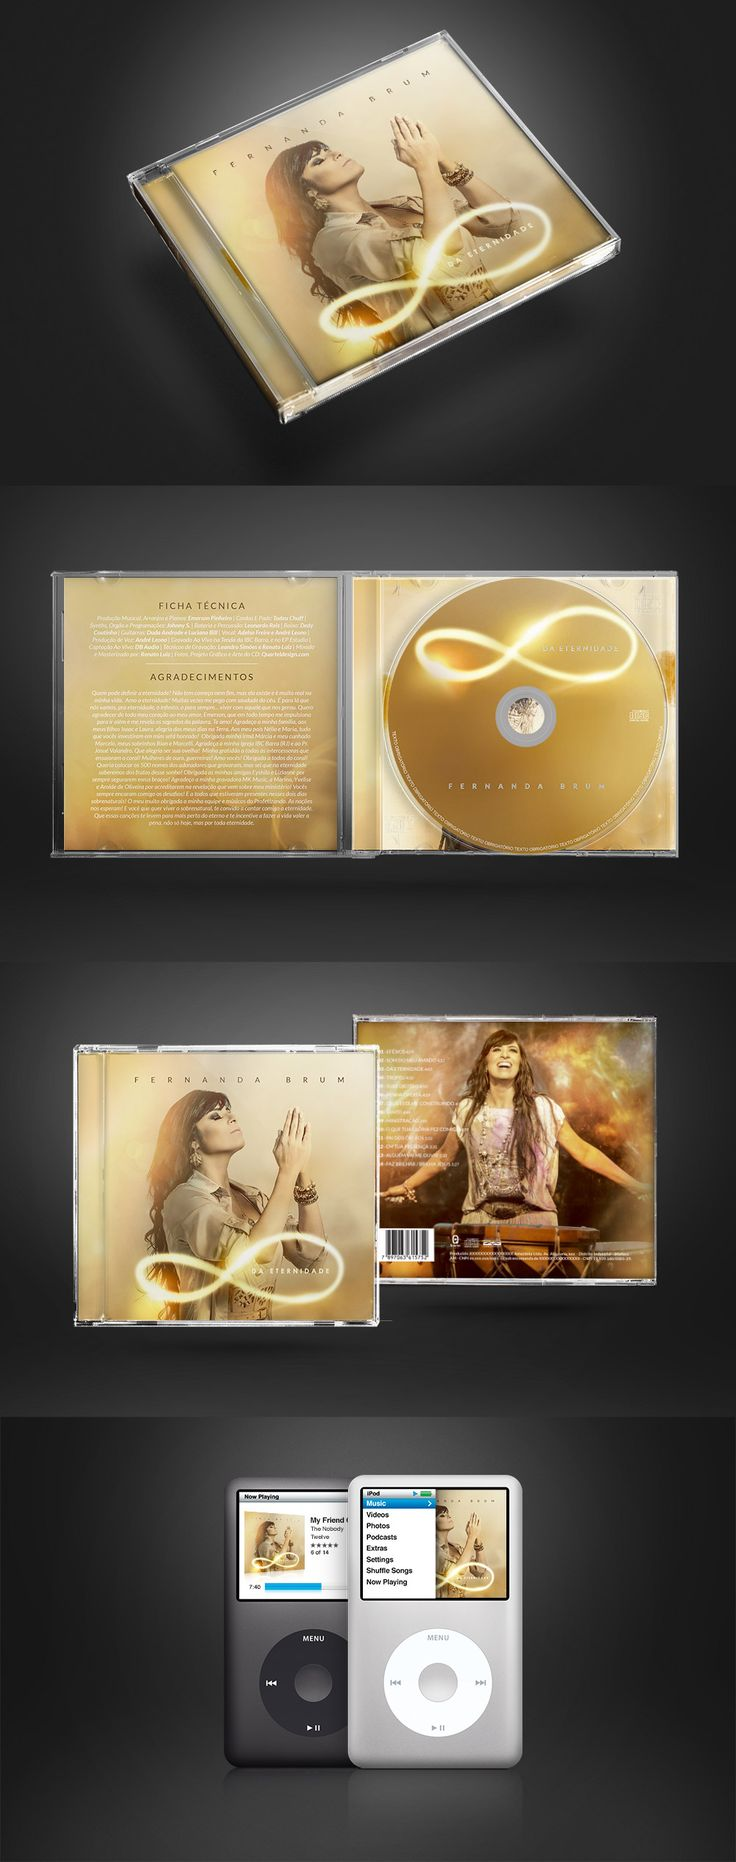 CD da Eternidade - Fernanda Brum - Quartel Design - Quartel Design